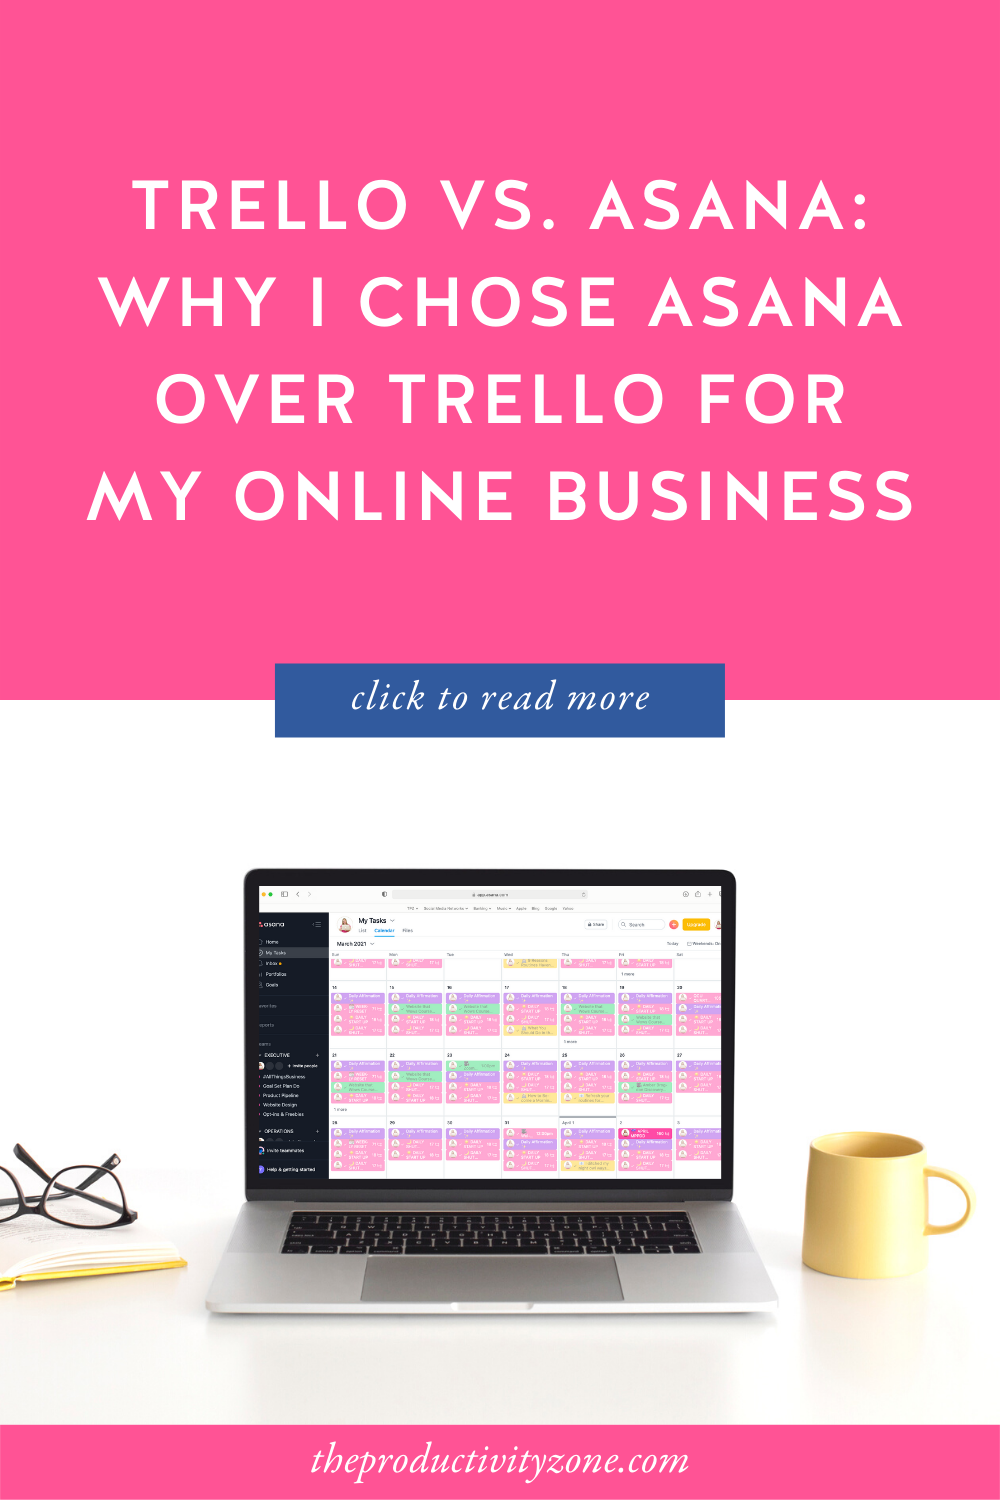 stock photo of an open laptop sitting on a white tabletop between a yellow mug and yellow hard cover notebook with glasses lying on top; Asana My Tasks is on the laptop screen